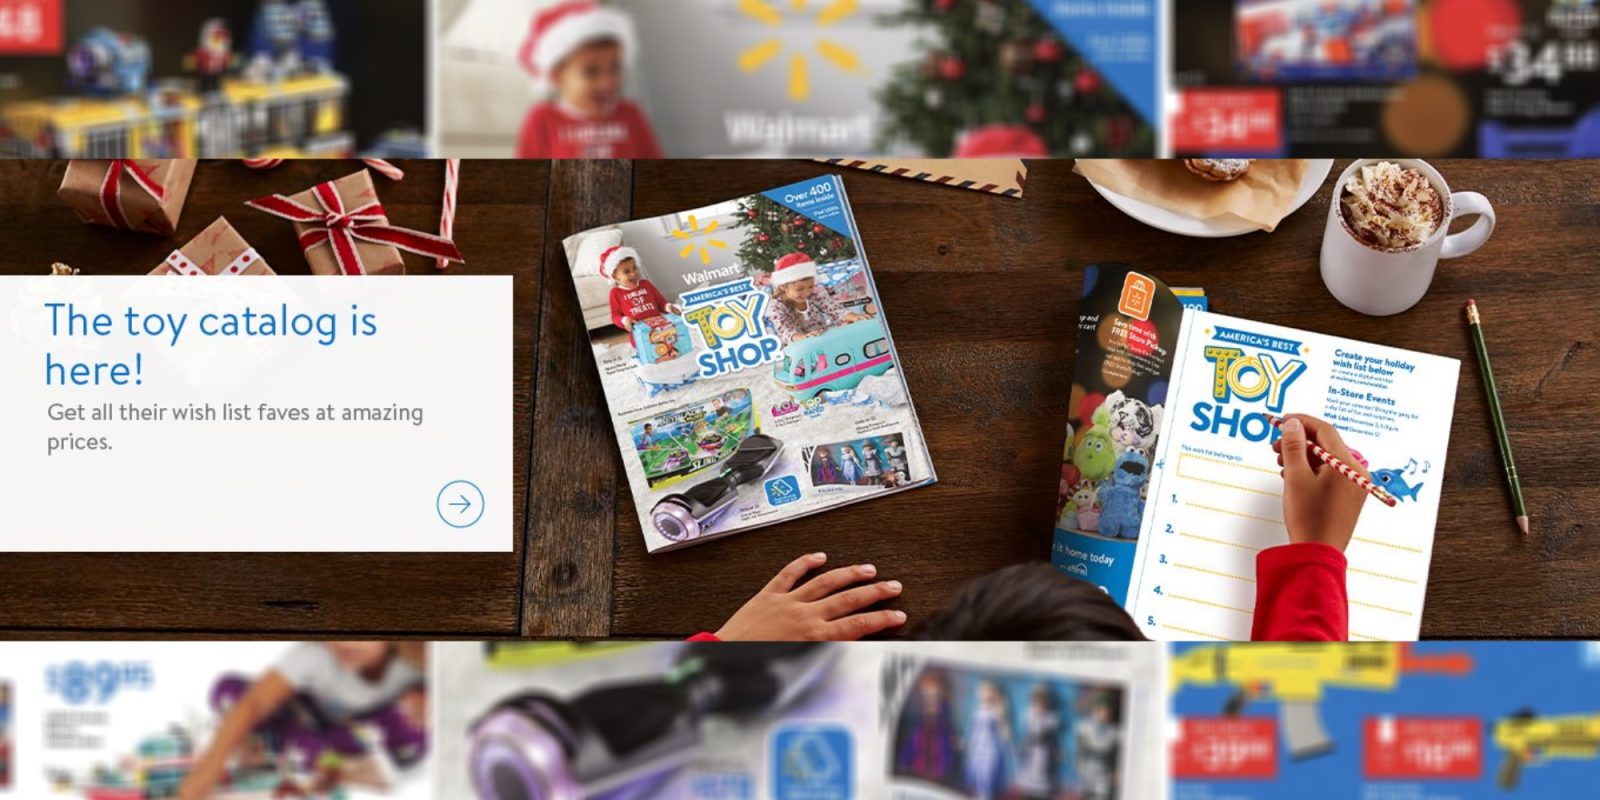 Walmart's toy catalog showcases top holiday gifts, virtual experiences, more